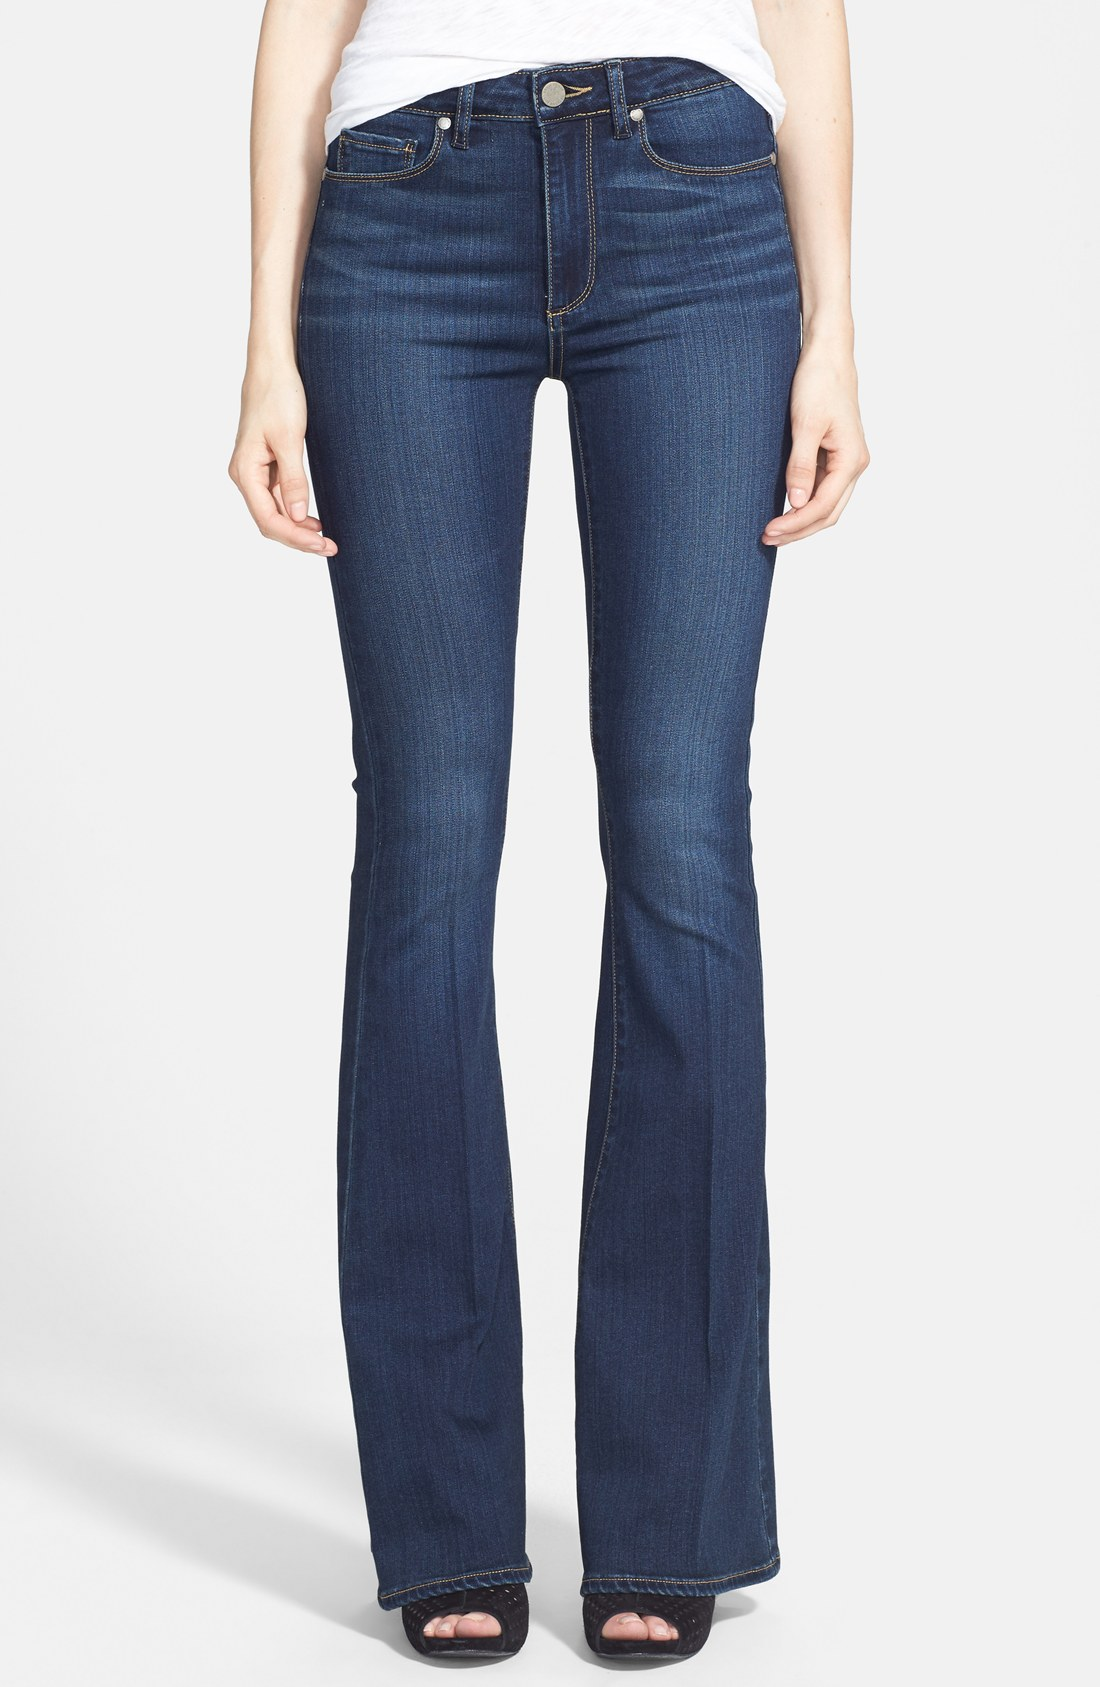 paige jeans paige u0027transcend - bell canyonu0027 high rise flare jeans (nottingham) |  nordstrom TGQVLCT